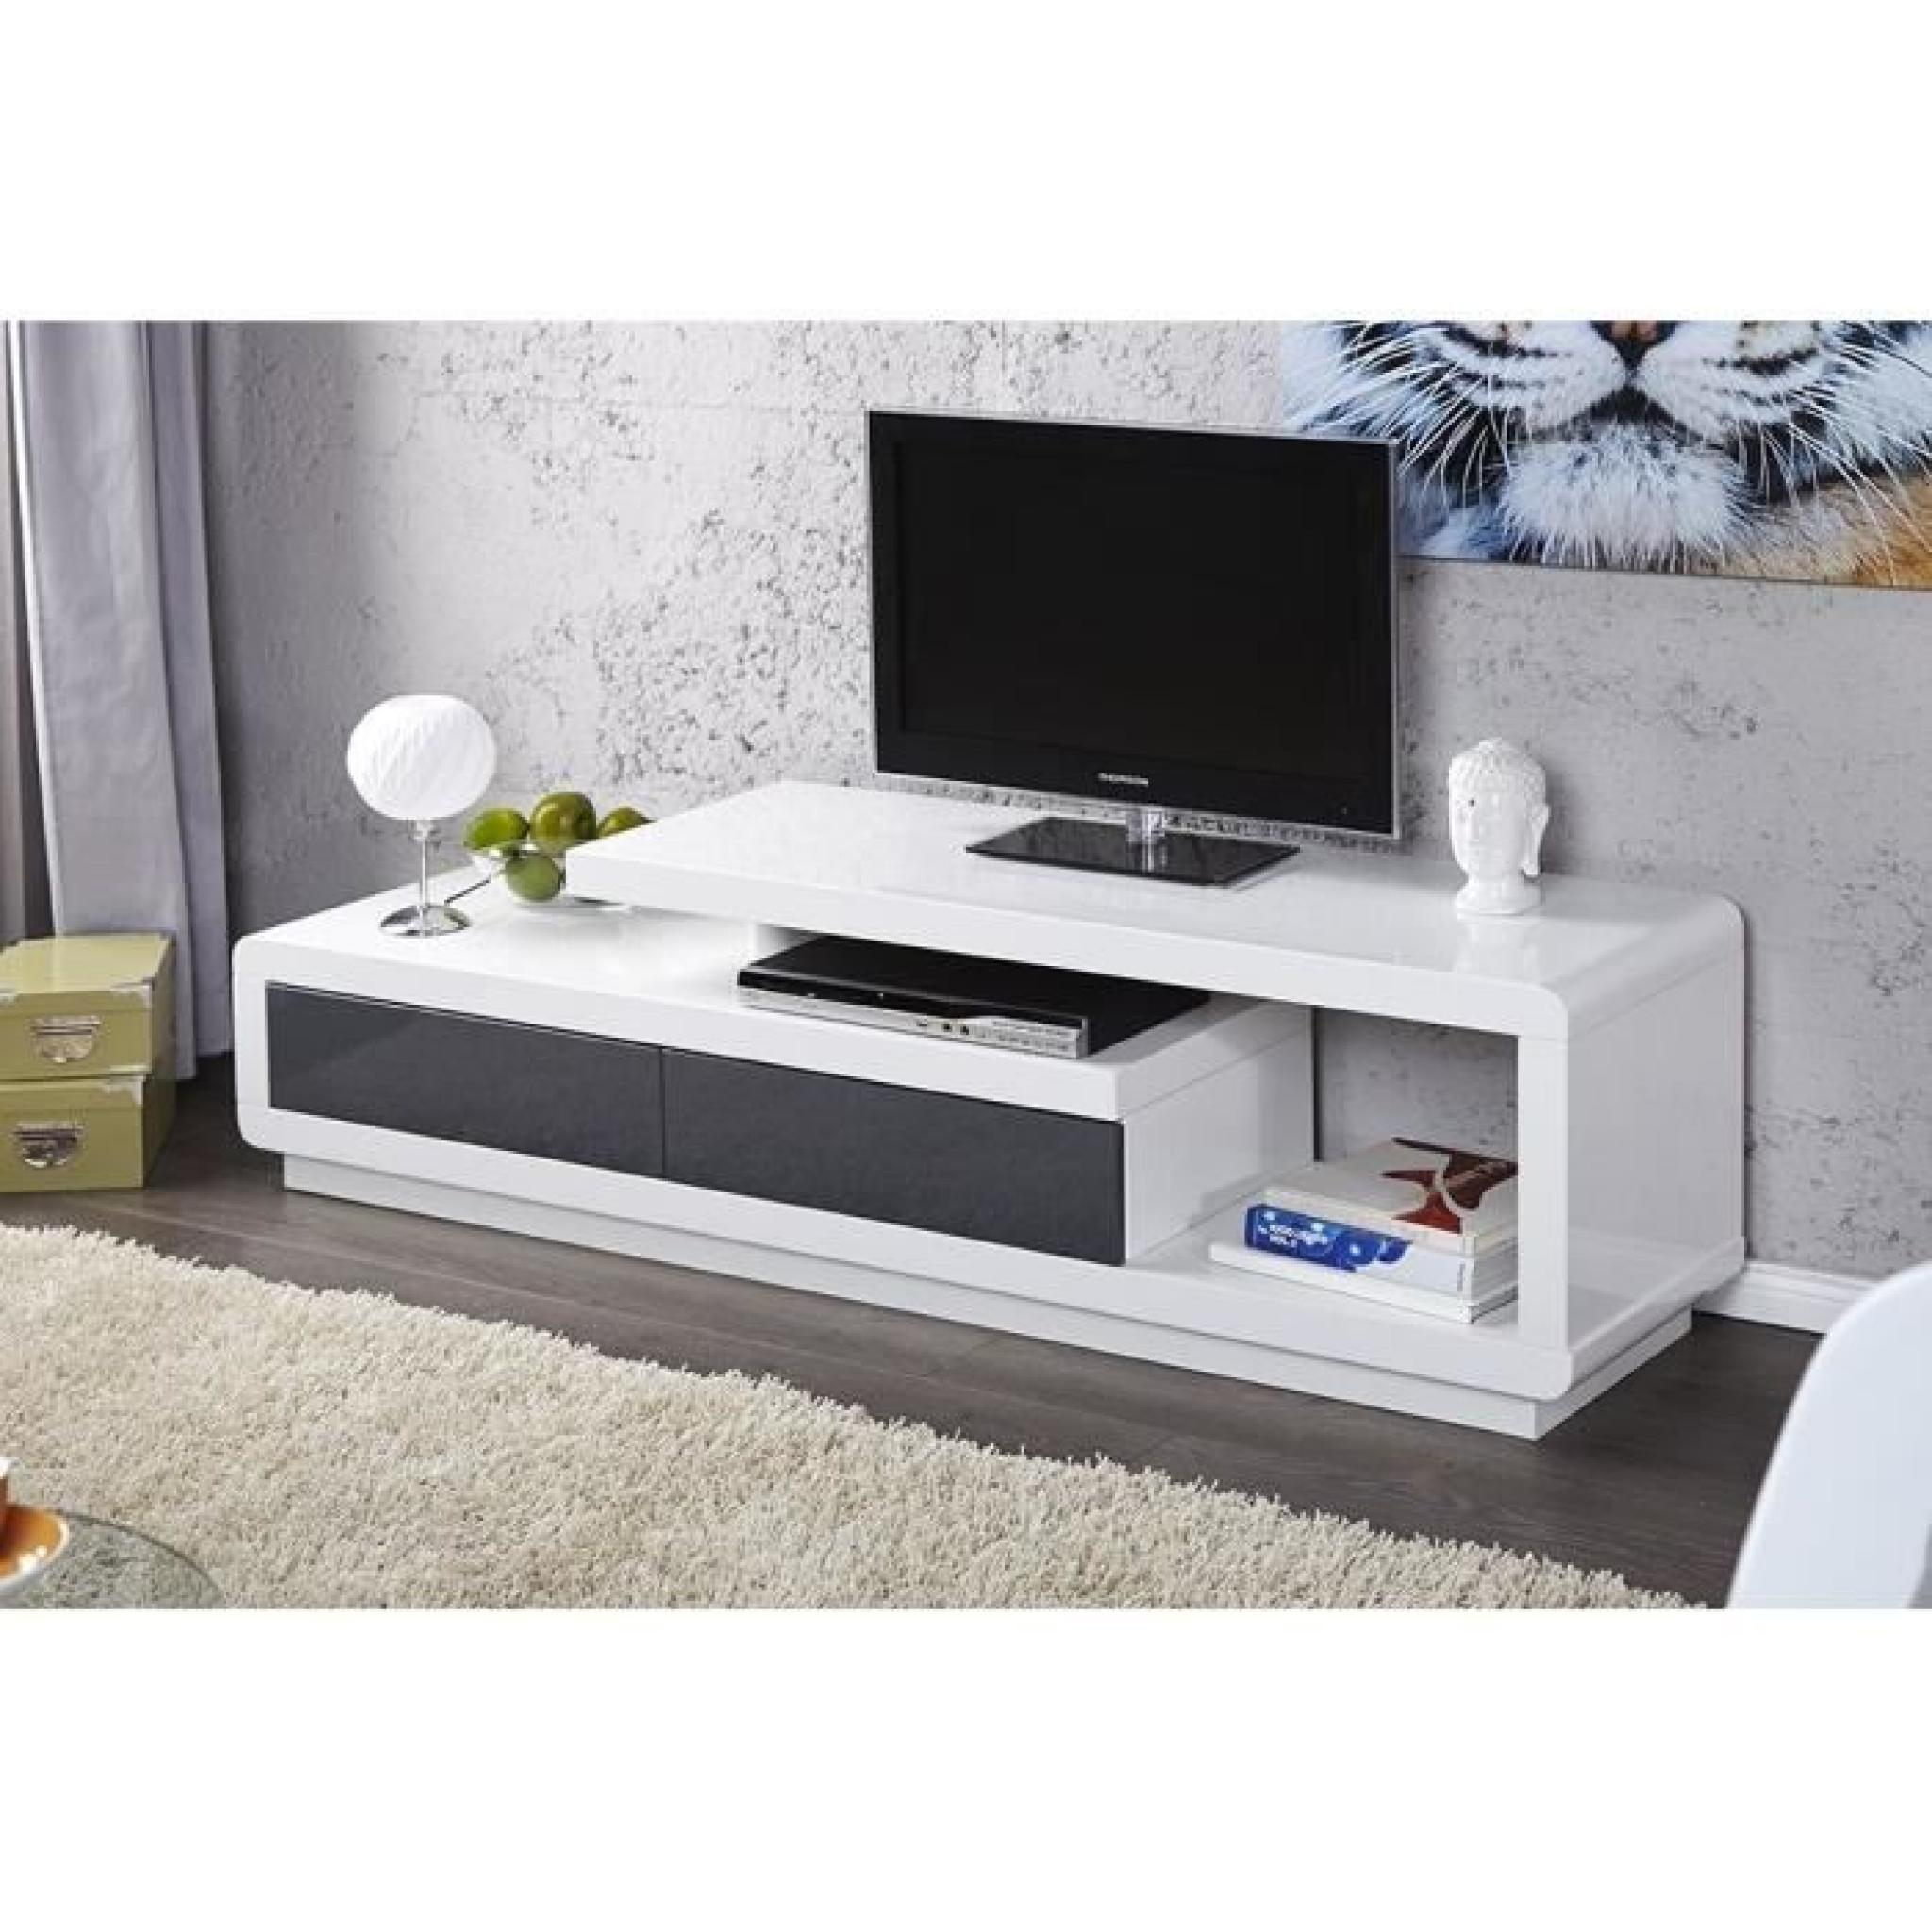 meuble tv design blanc laque pas cher id es de d coration int rieure french decor